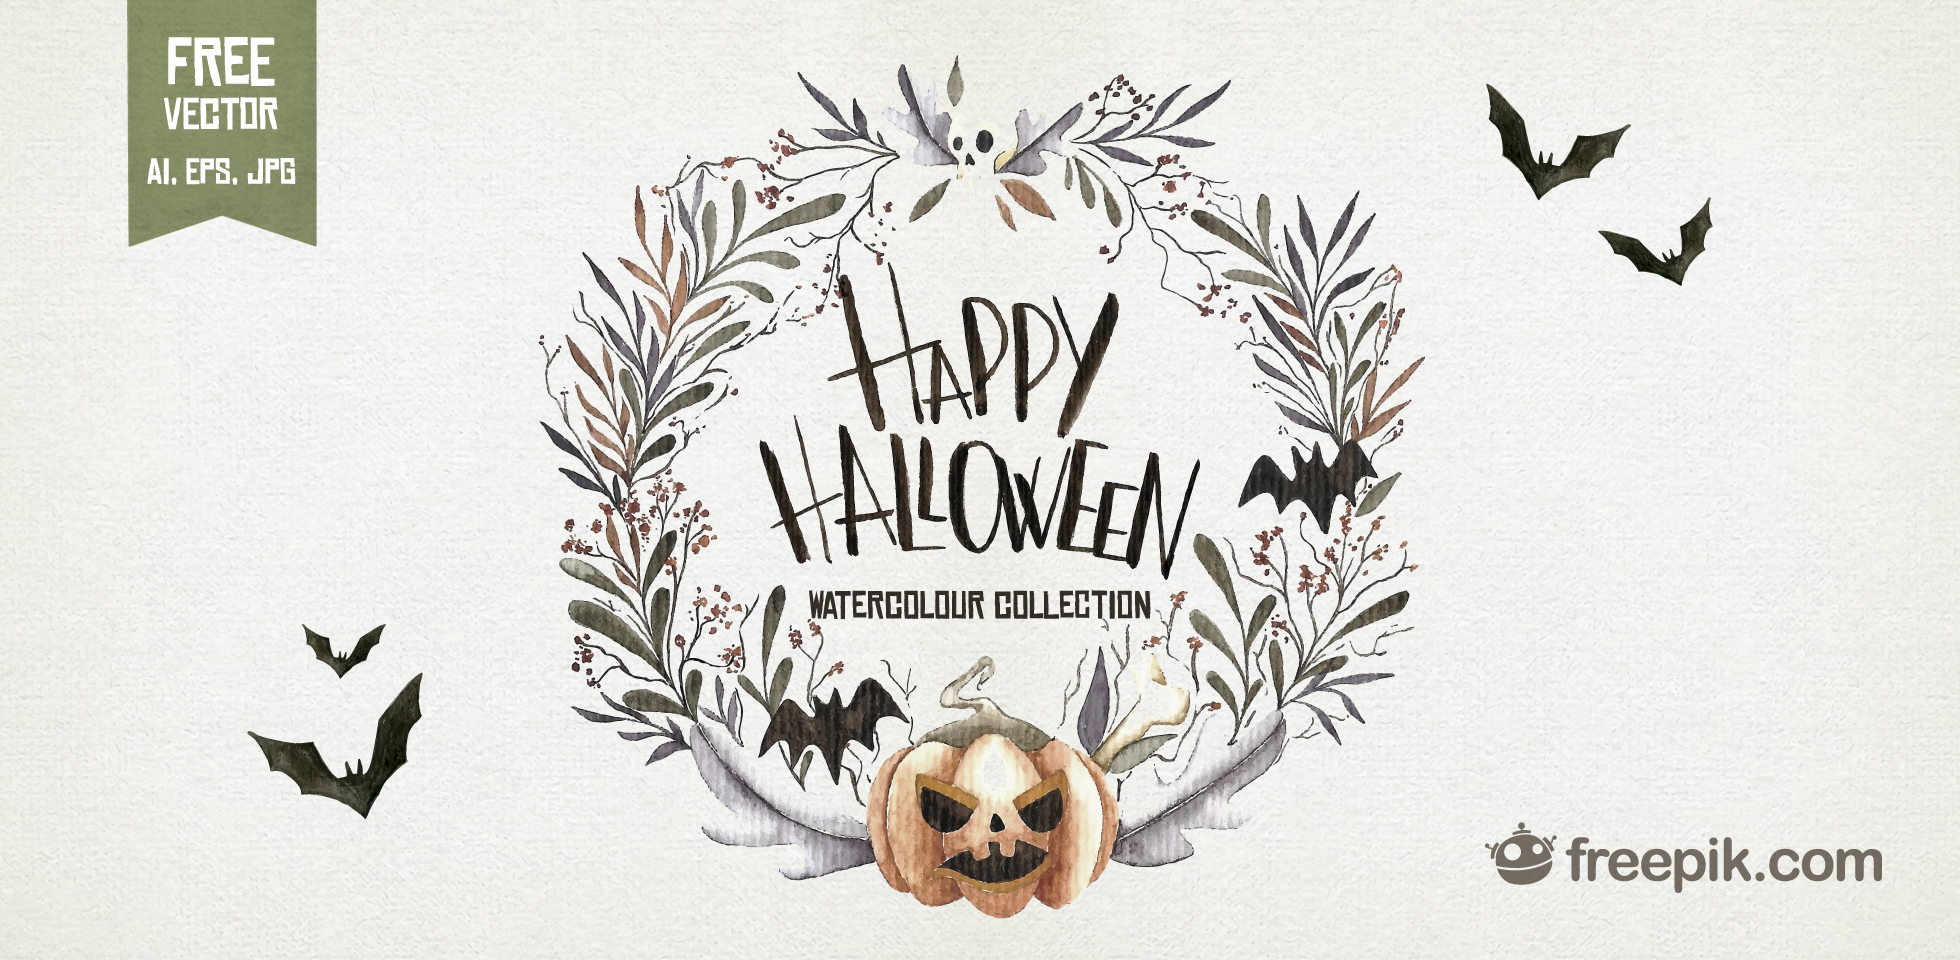 Free Download: Watercolor Halloween Set